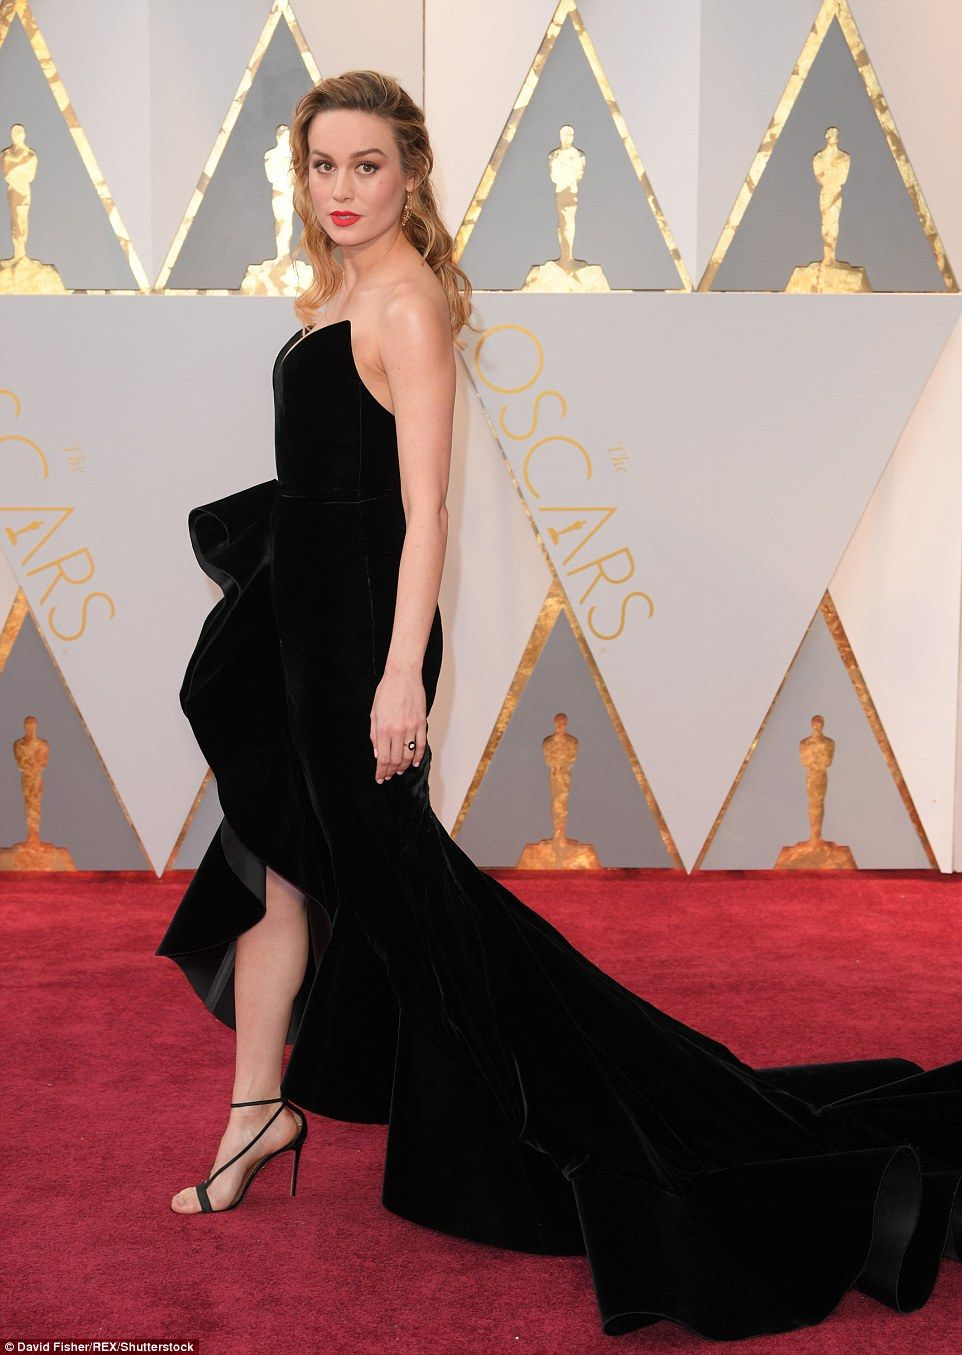 Oscars stars sparkle on the red carpet haute couture oscars